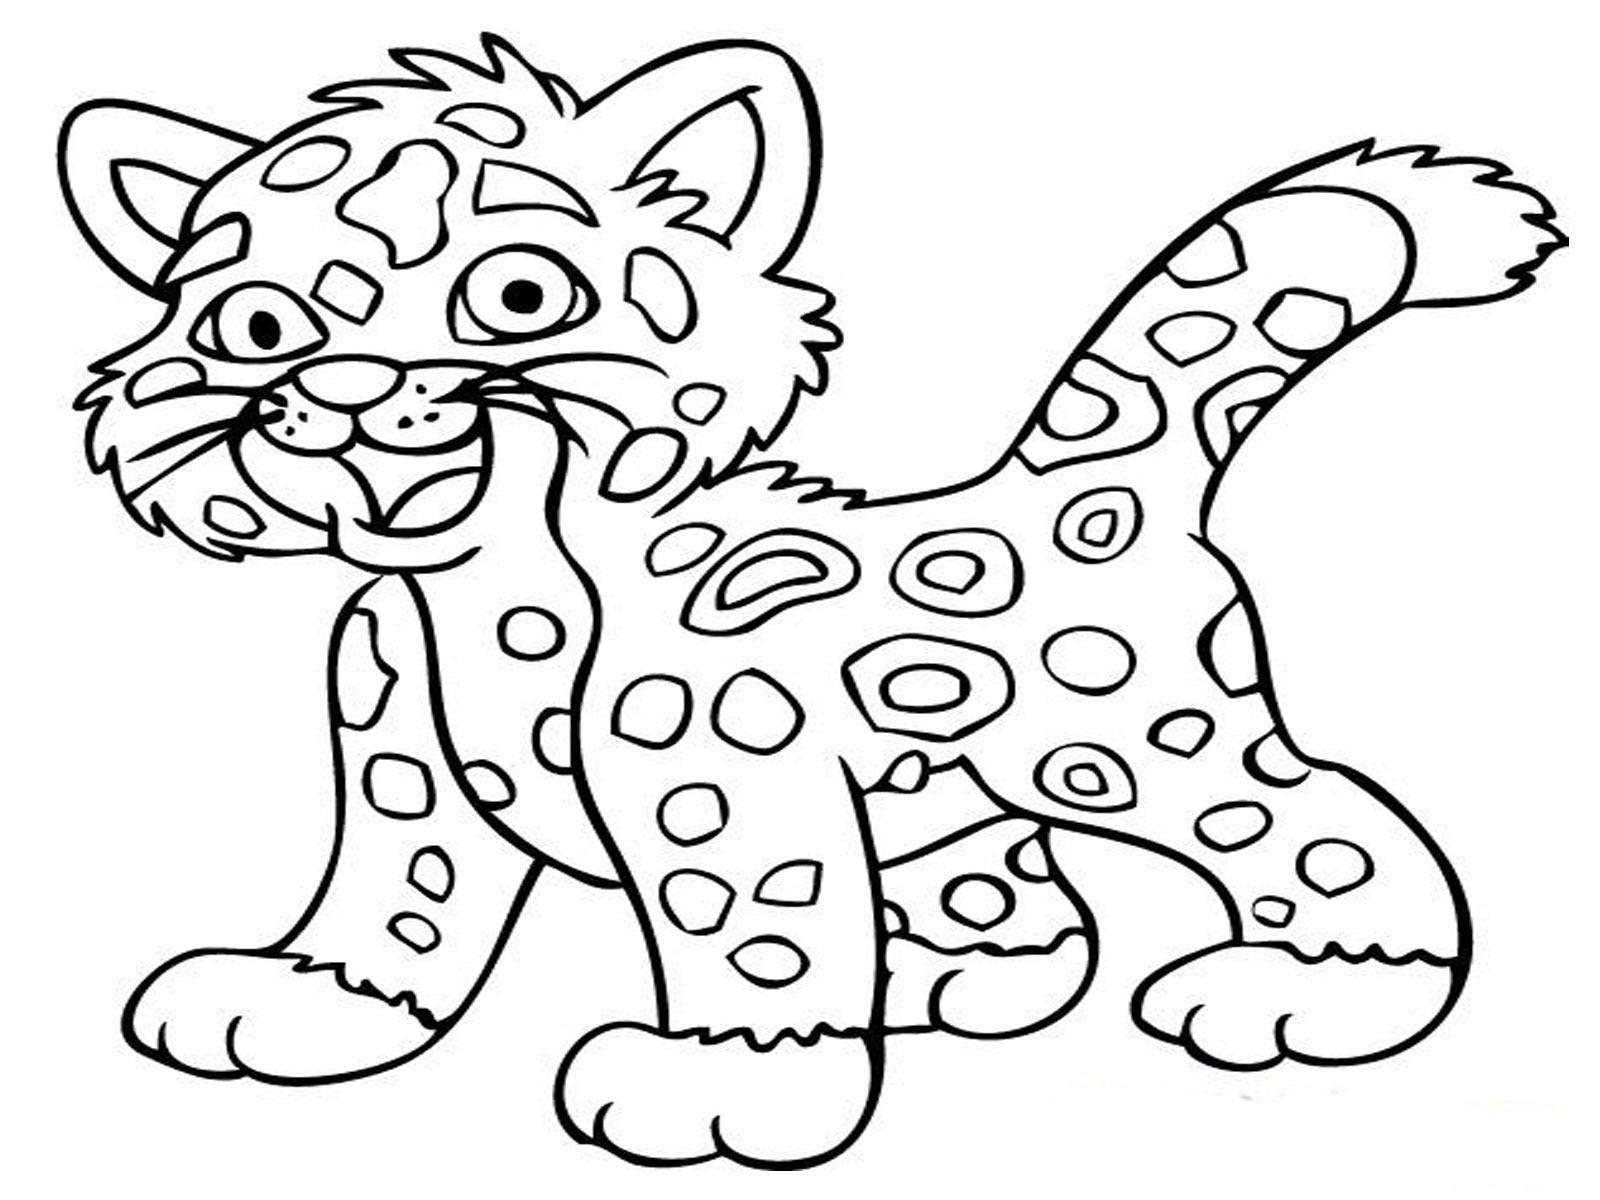 Animals coloring pages for kids printable - Coloringpages Of Animals Jaguar Animal Coloring Pages Realistic Coloring Pages Coloring Pages For Kidsprintable